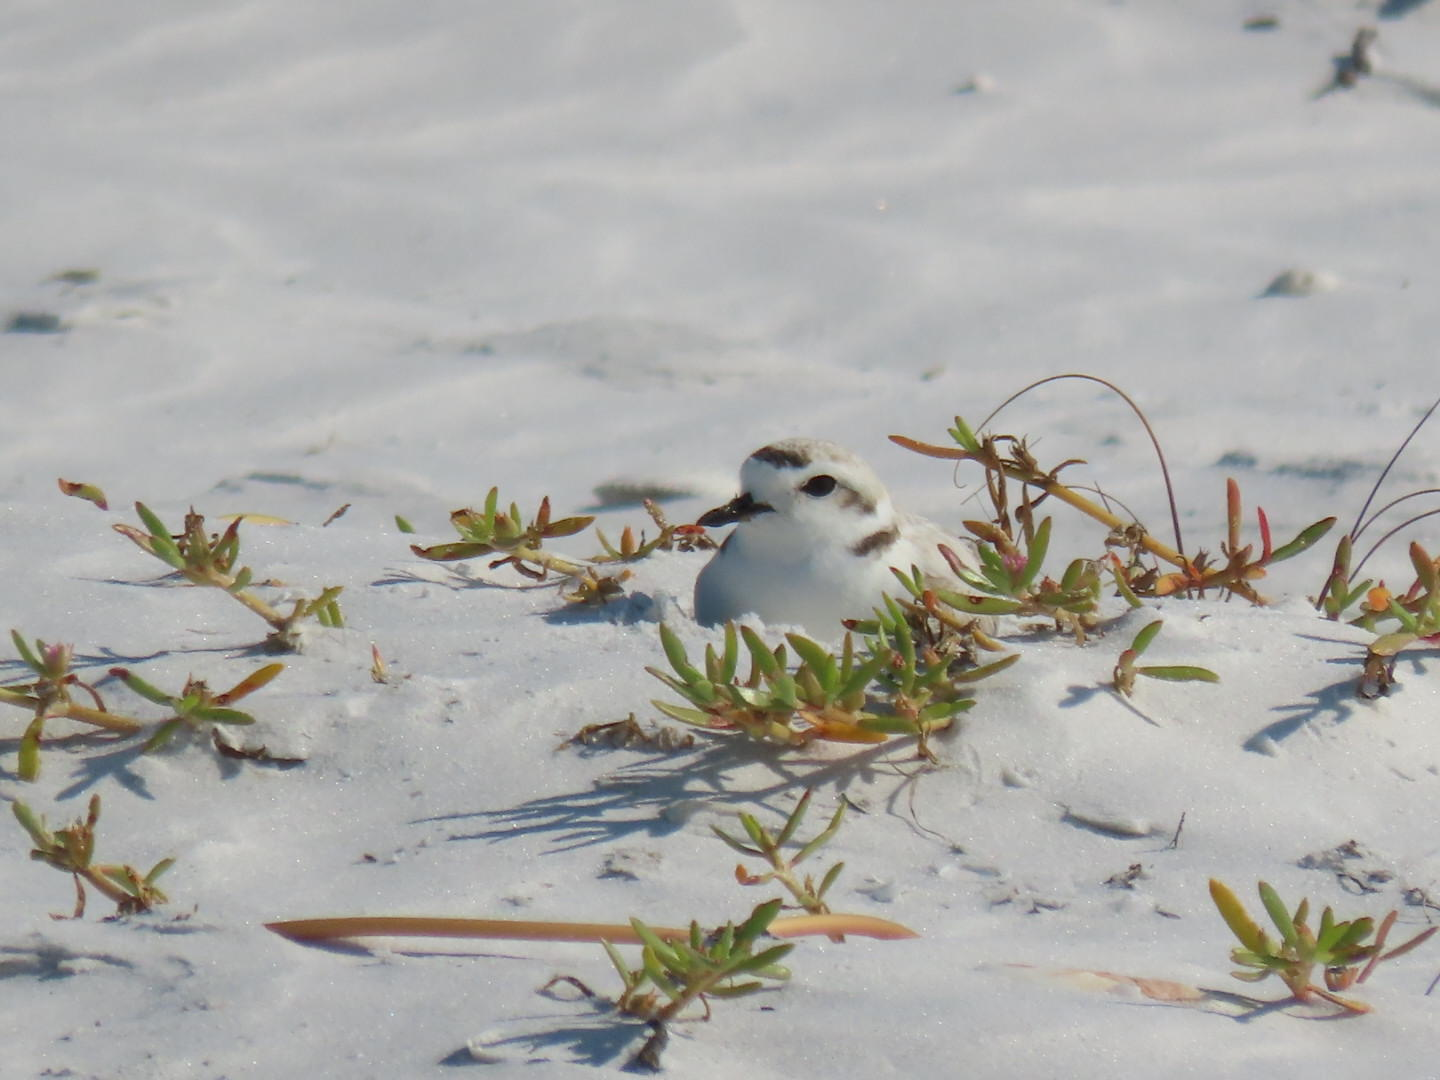 Snowy Plover incubating a nest. Photo: Kylie Wilson.